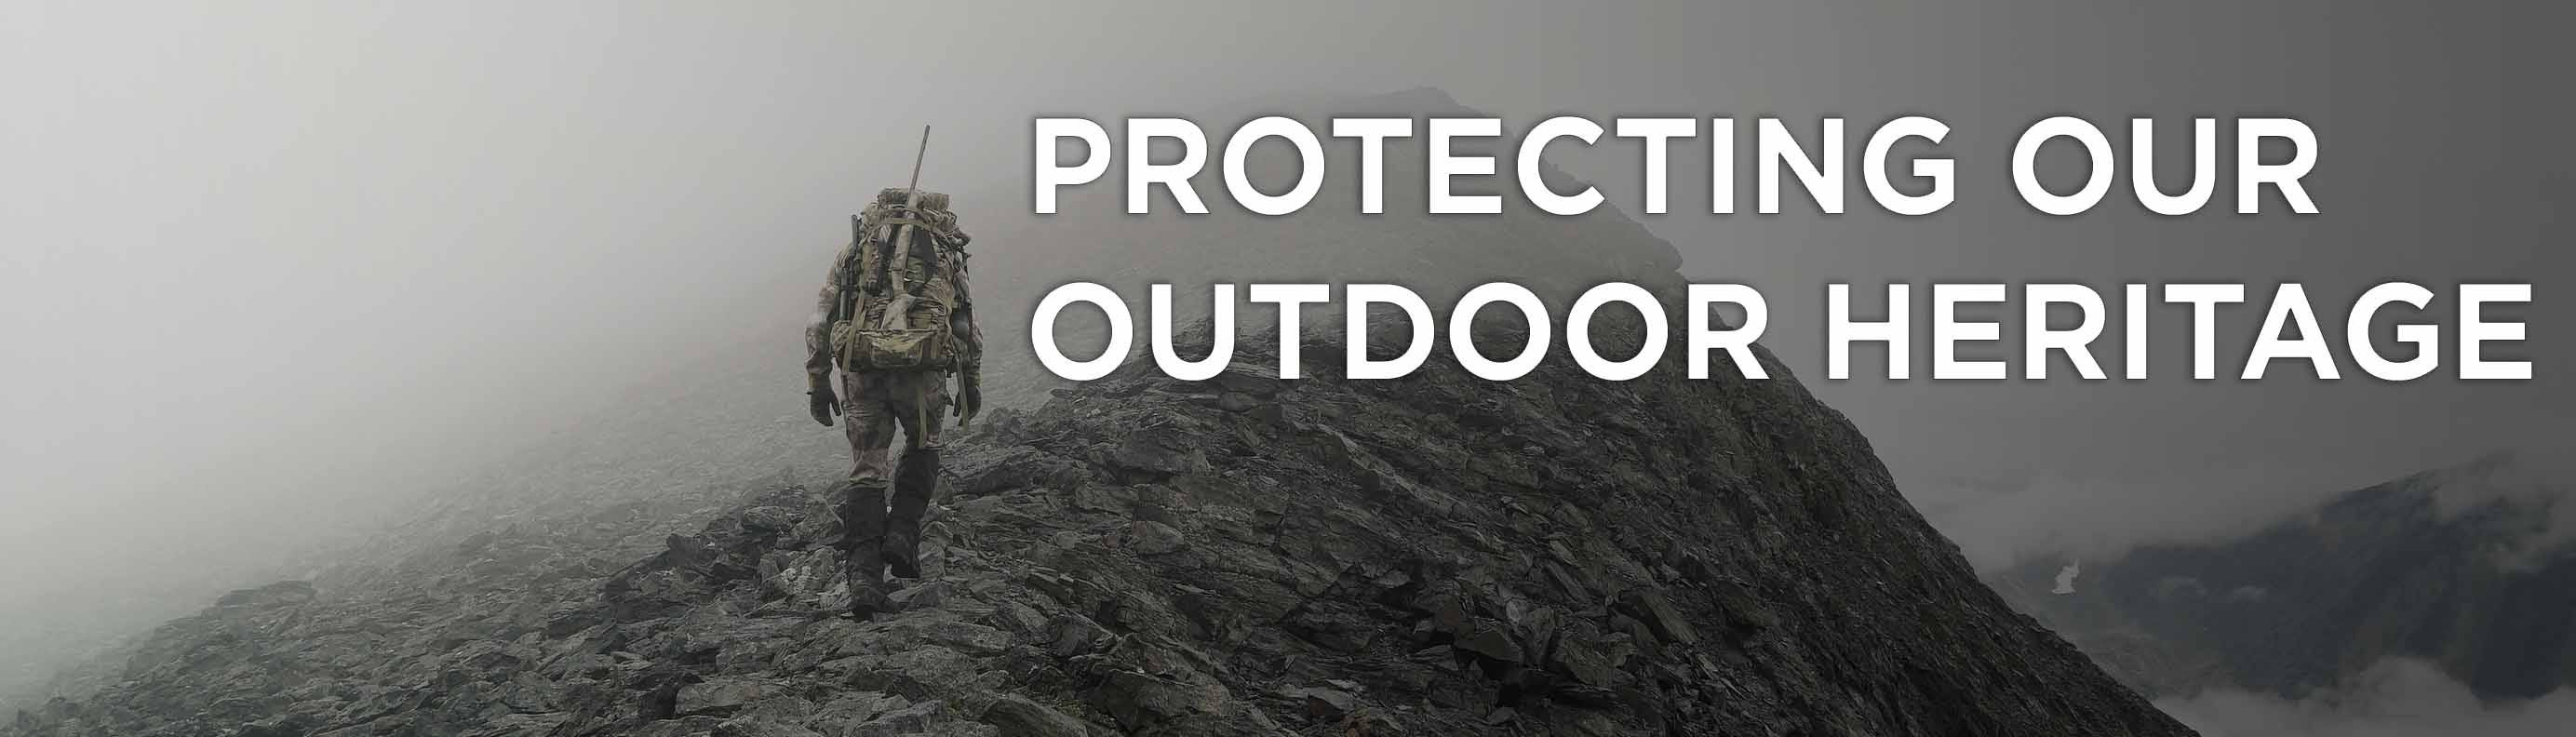 Protecting Our Outdoor Heritage